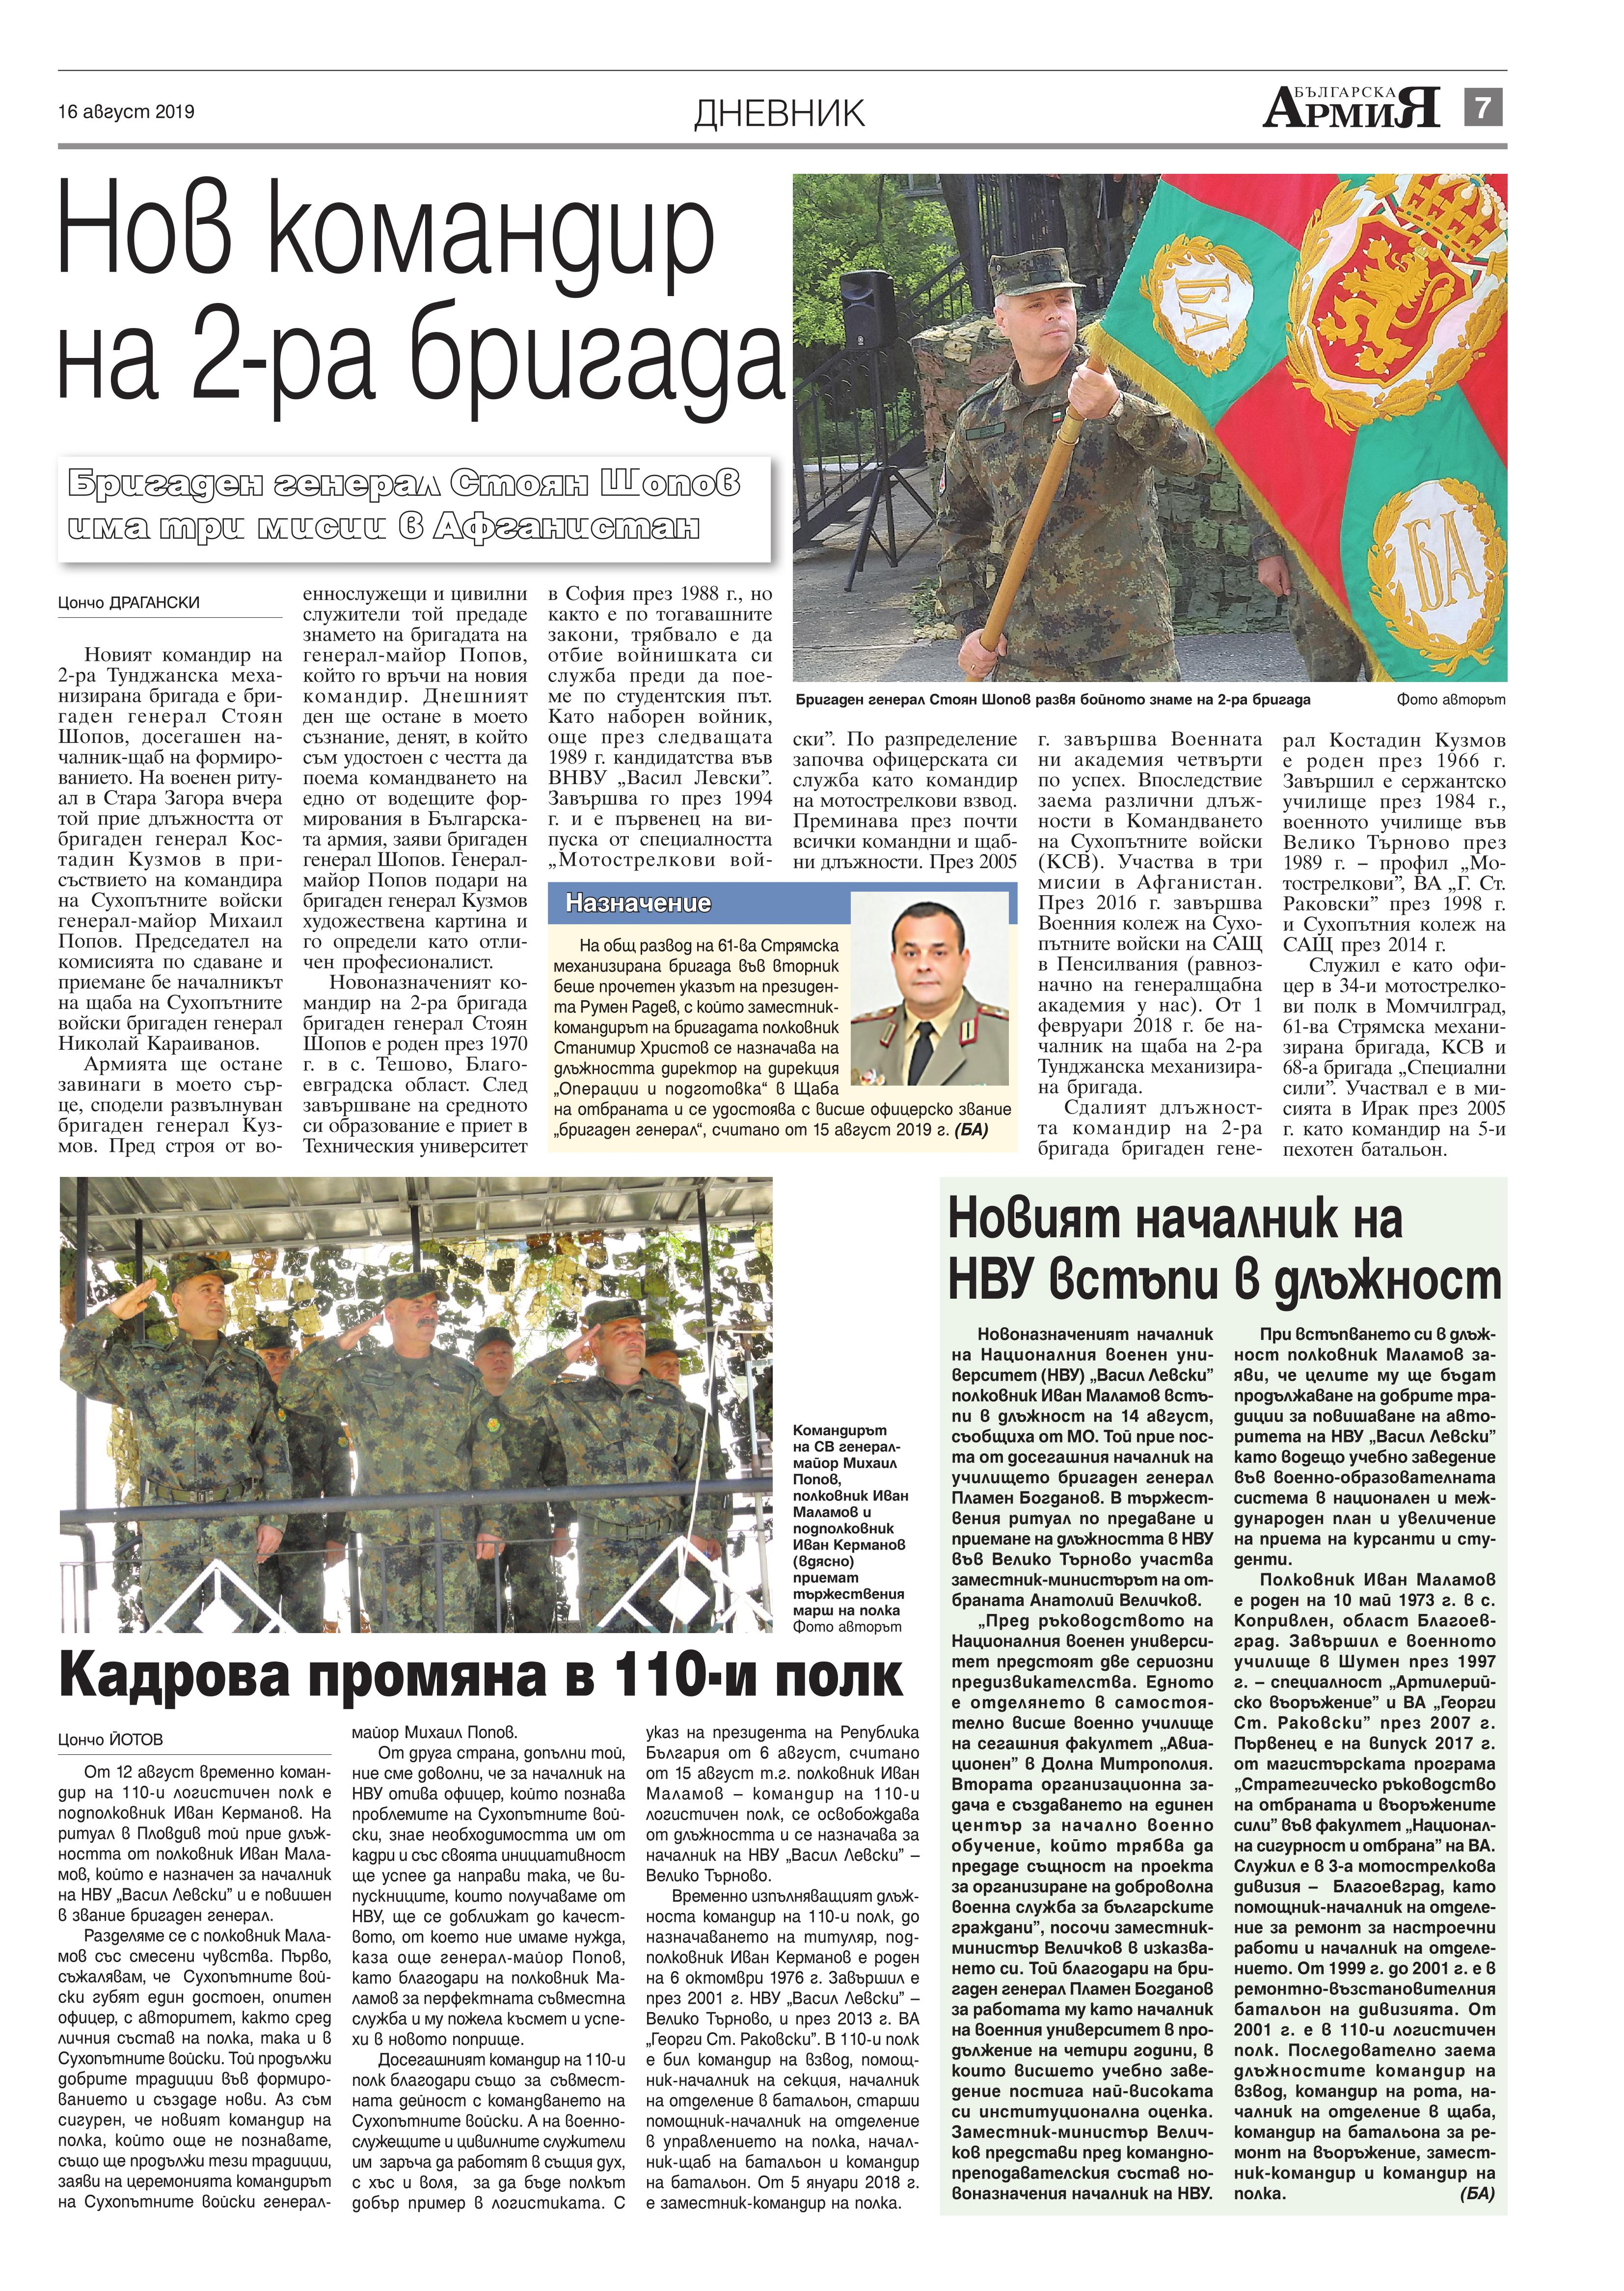 https://www.armymedia.bg/wp-content/uploads/2015/06/07.page1_-104.jpg